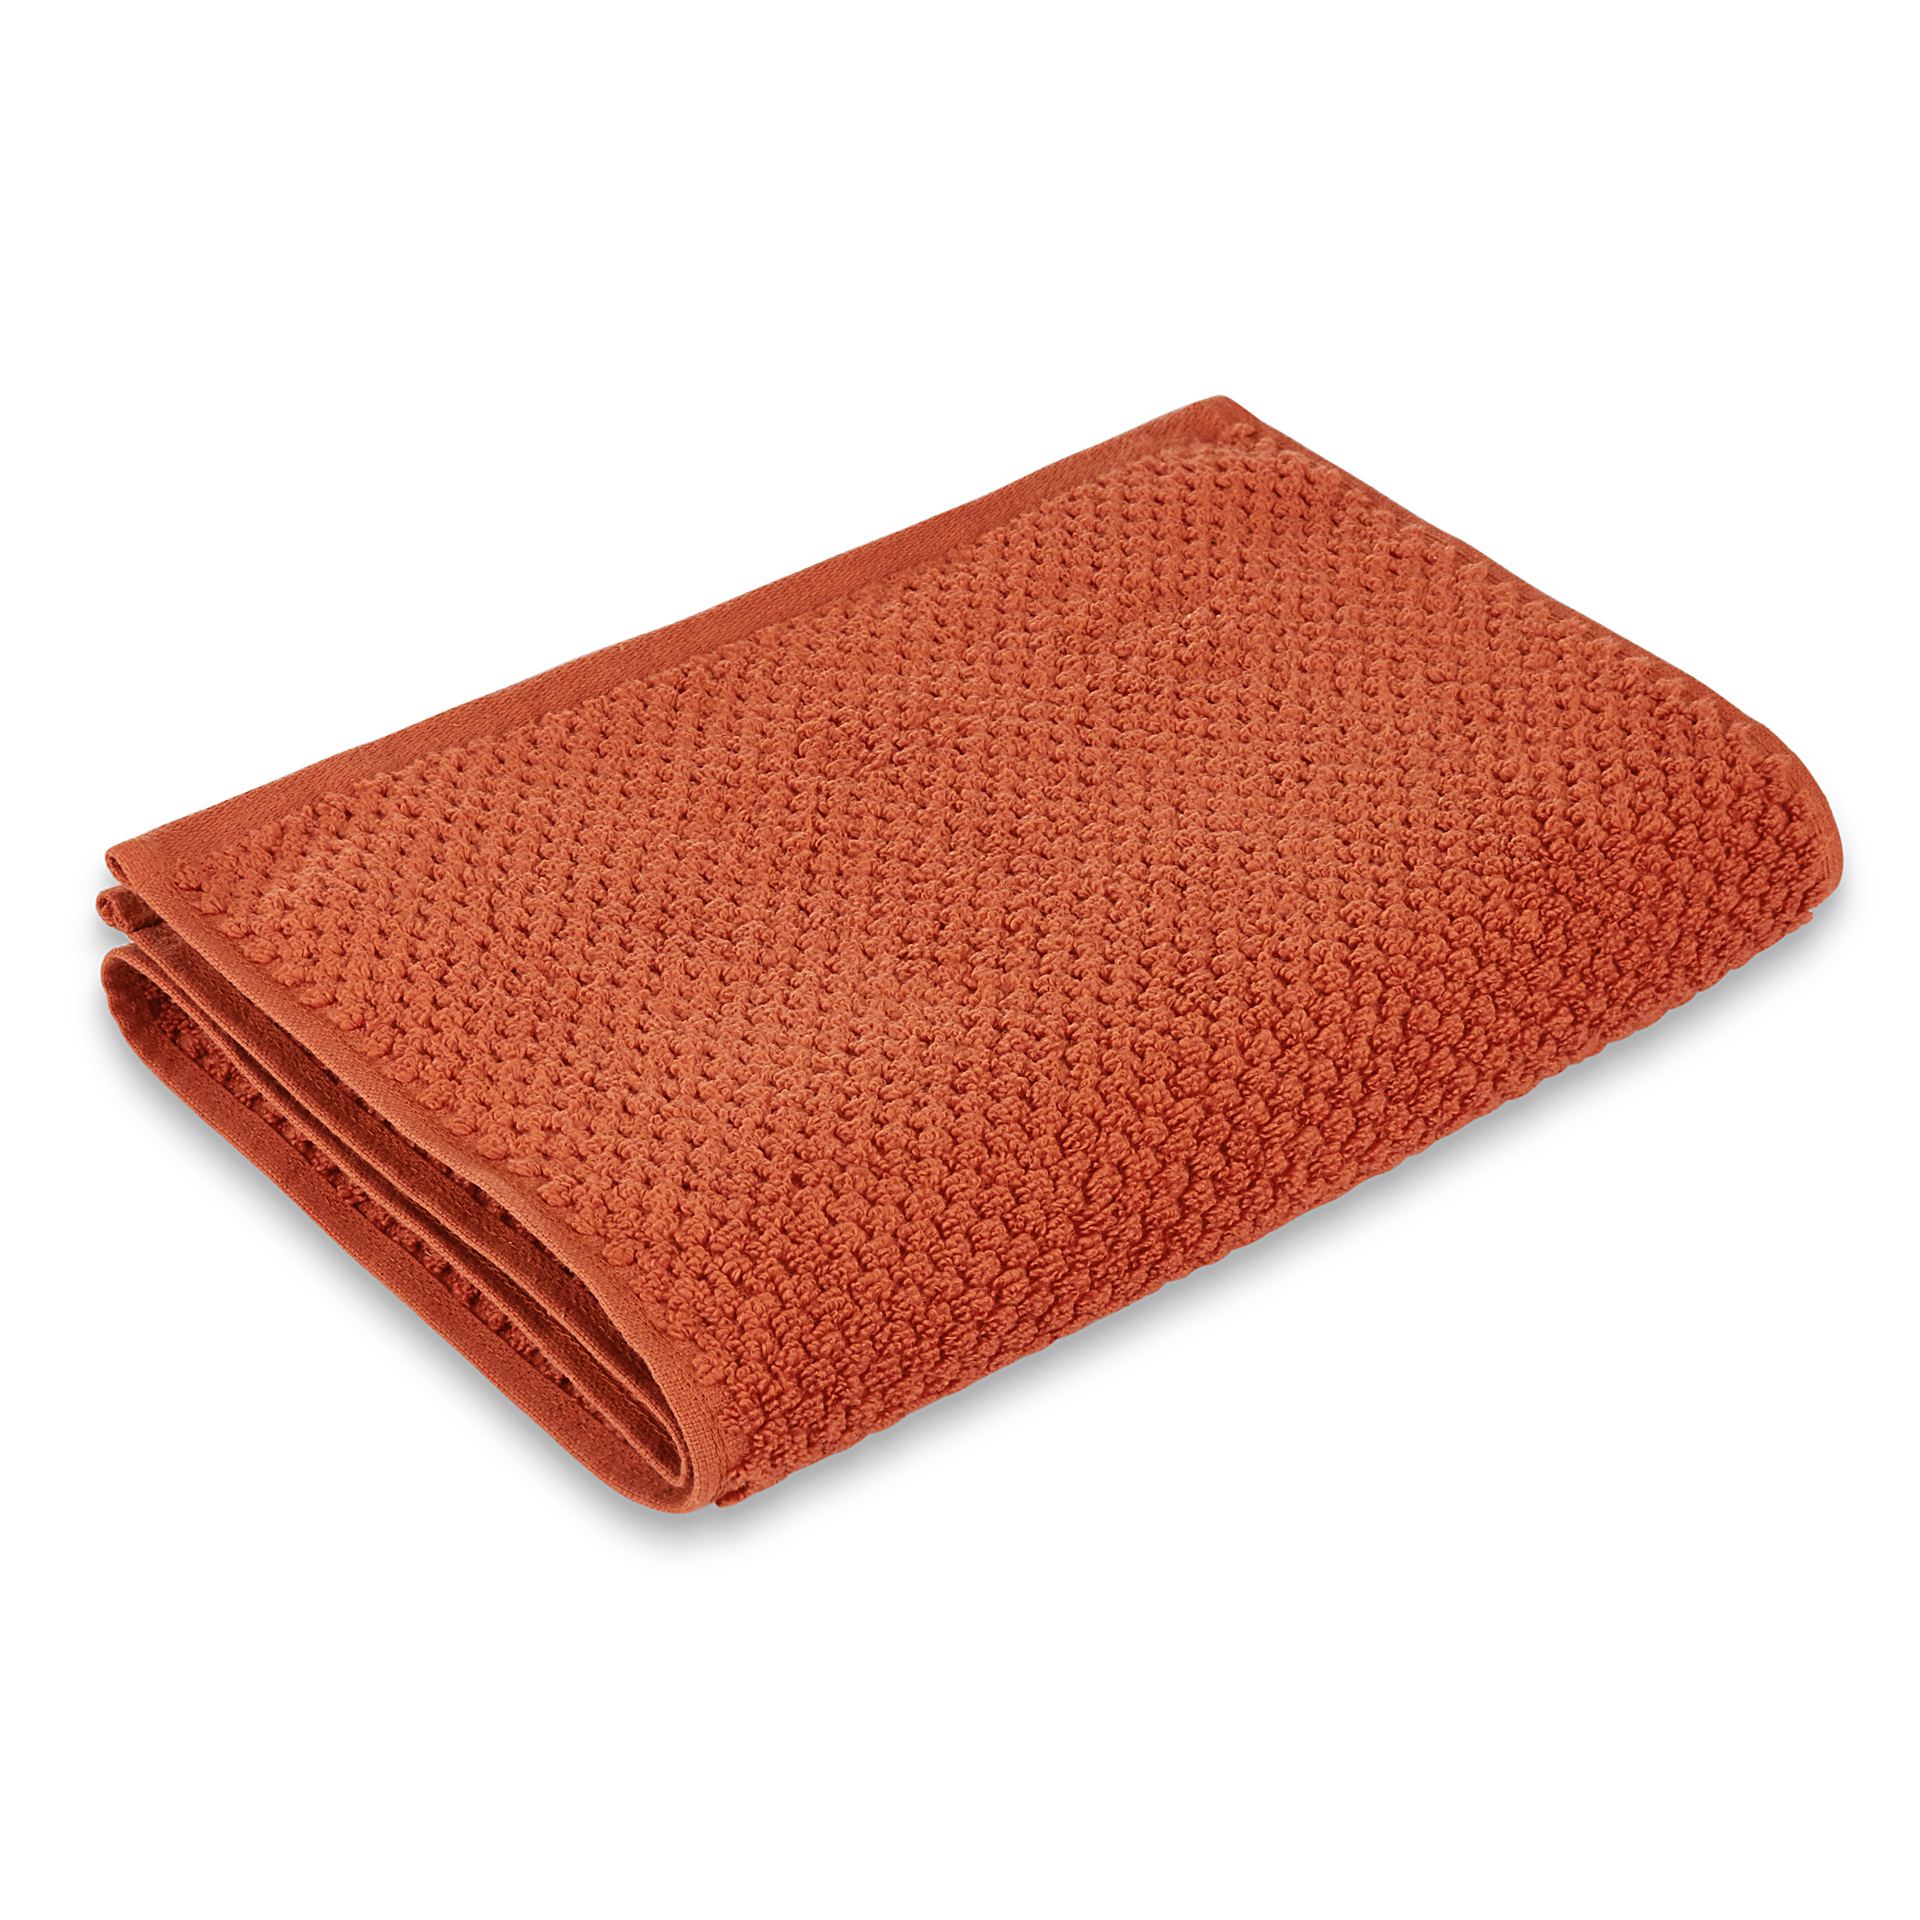 Spaces Atrium Cotton Double Bed Sheets in Rust Colour by Spaces